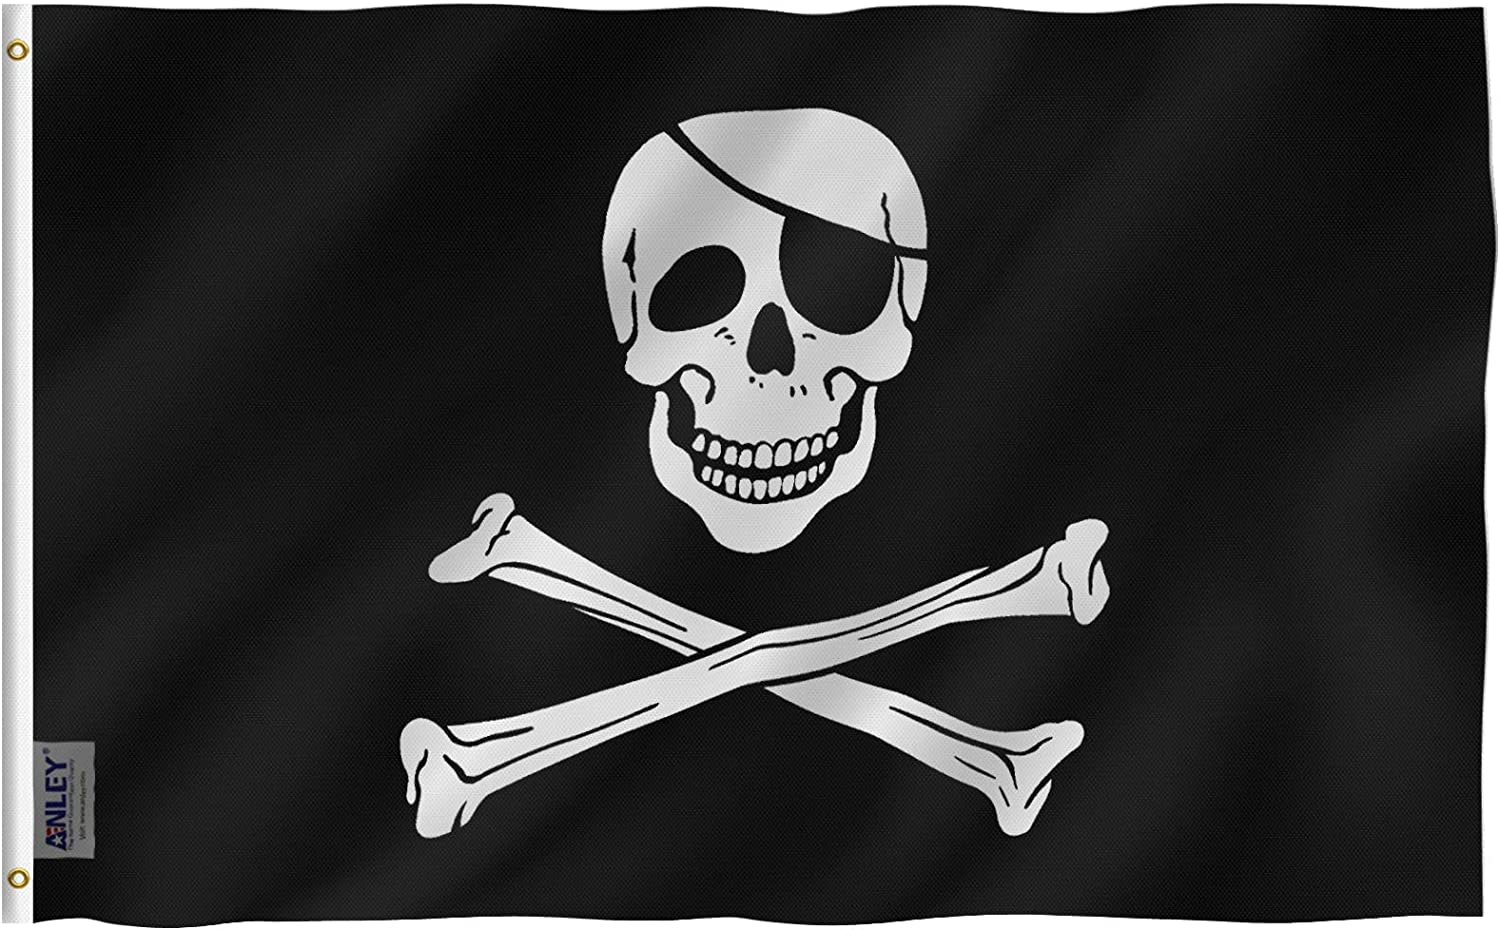 Amazon Com Other Flags Pirate Skull And Crossbones Flag 3 Foot By 5 Foot Polyester Clothing